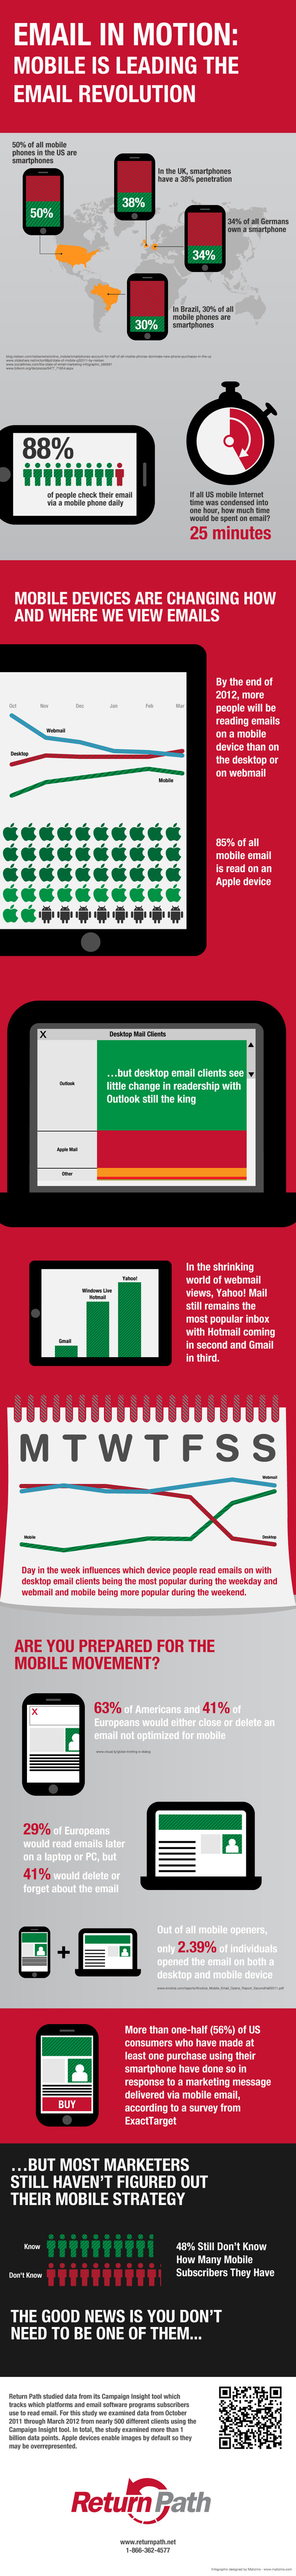 mobile email stats infographic